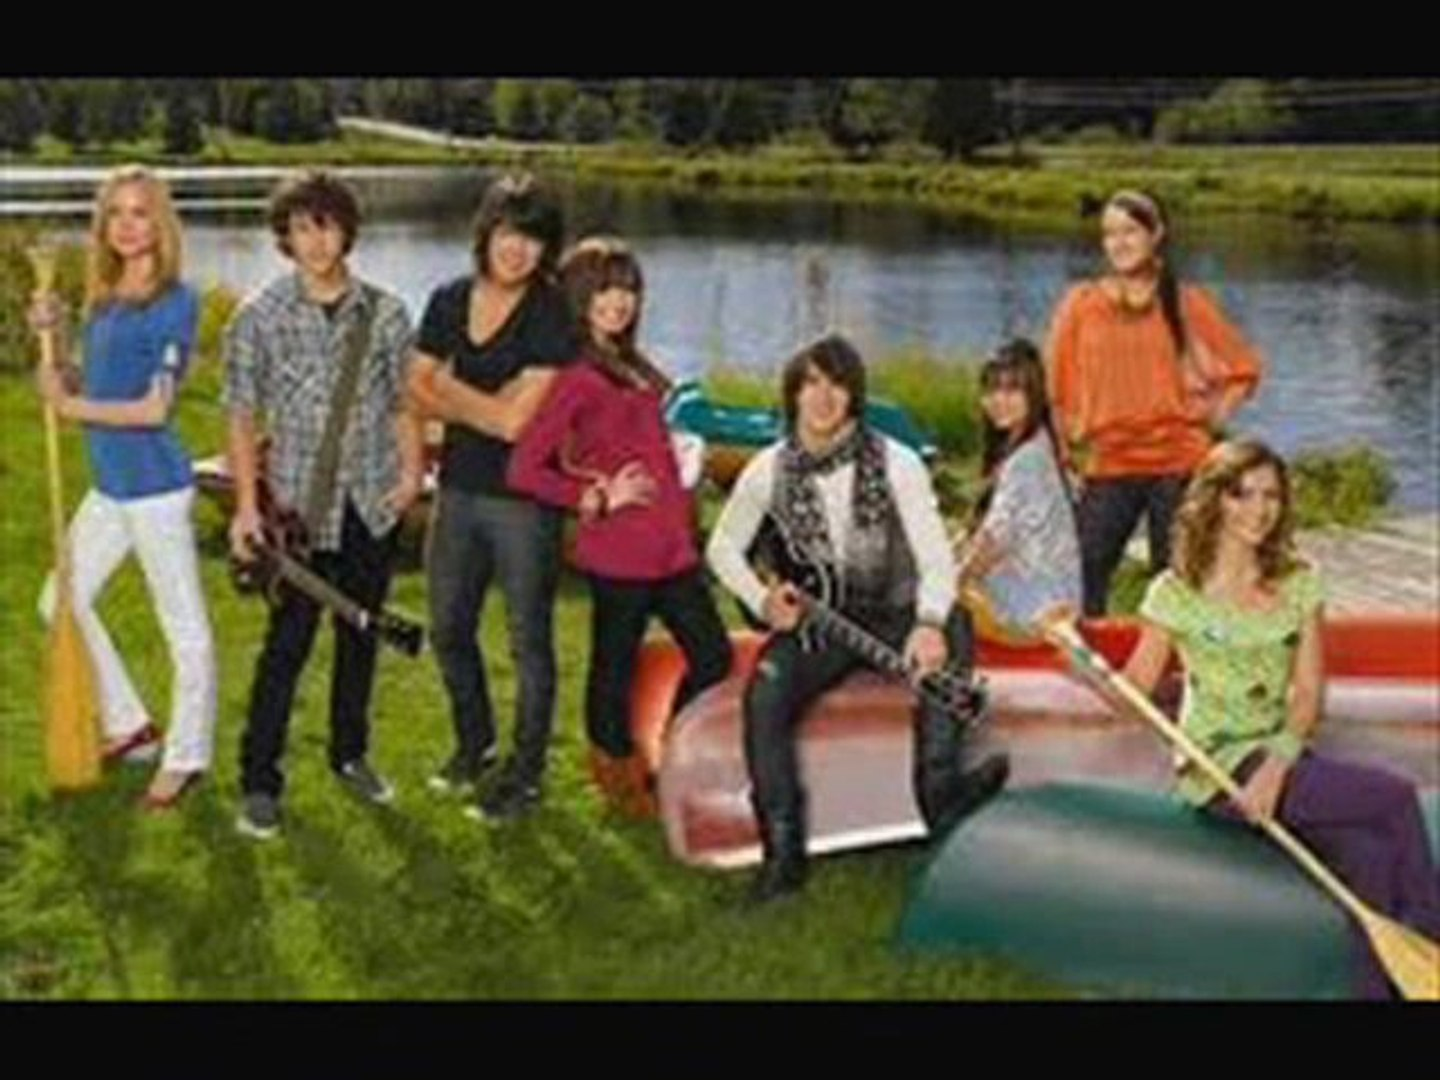 Camp Rock 2 The Final Jam Movie Part 1 Hd Full Free Dailymotion Video